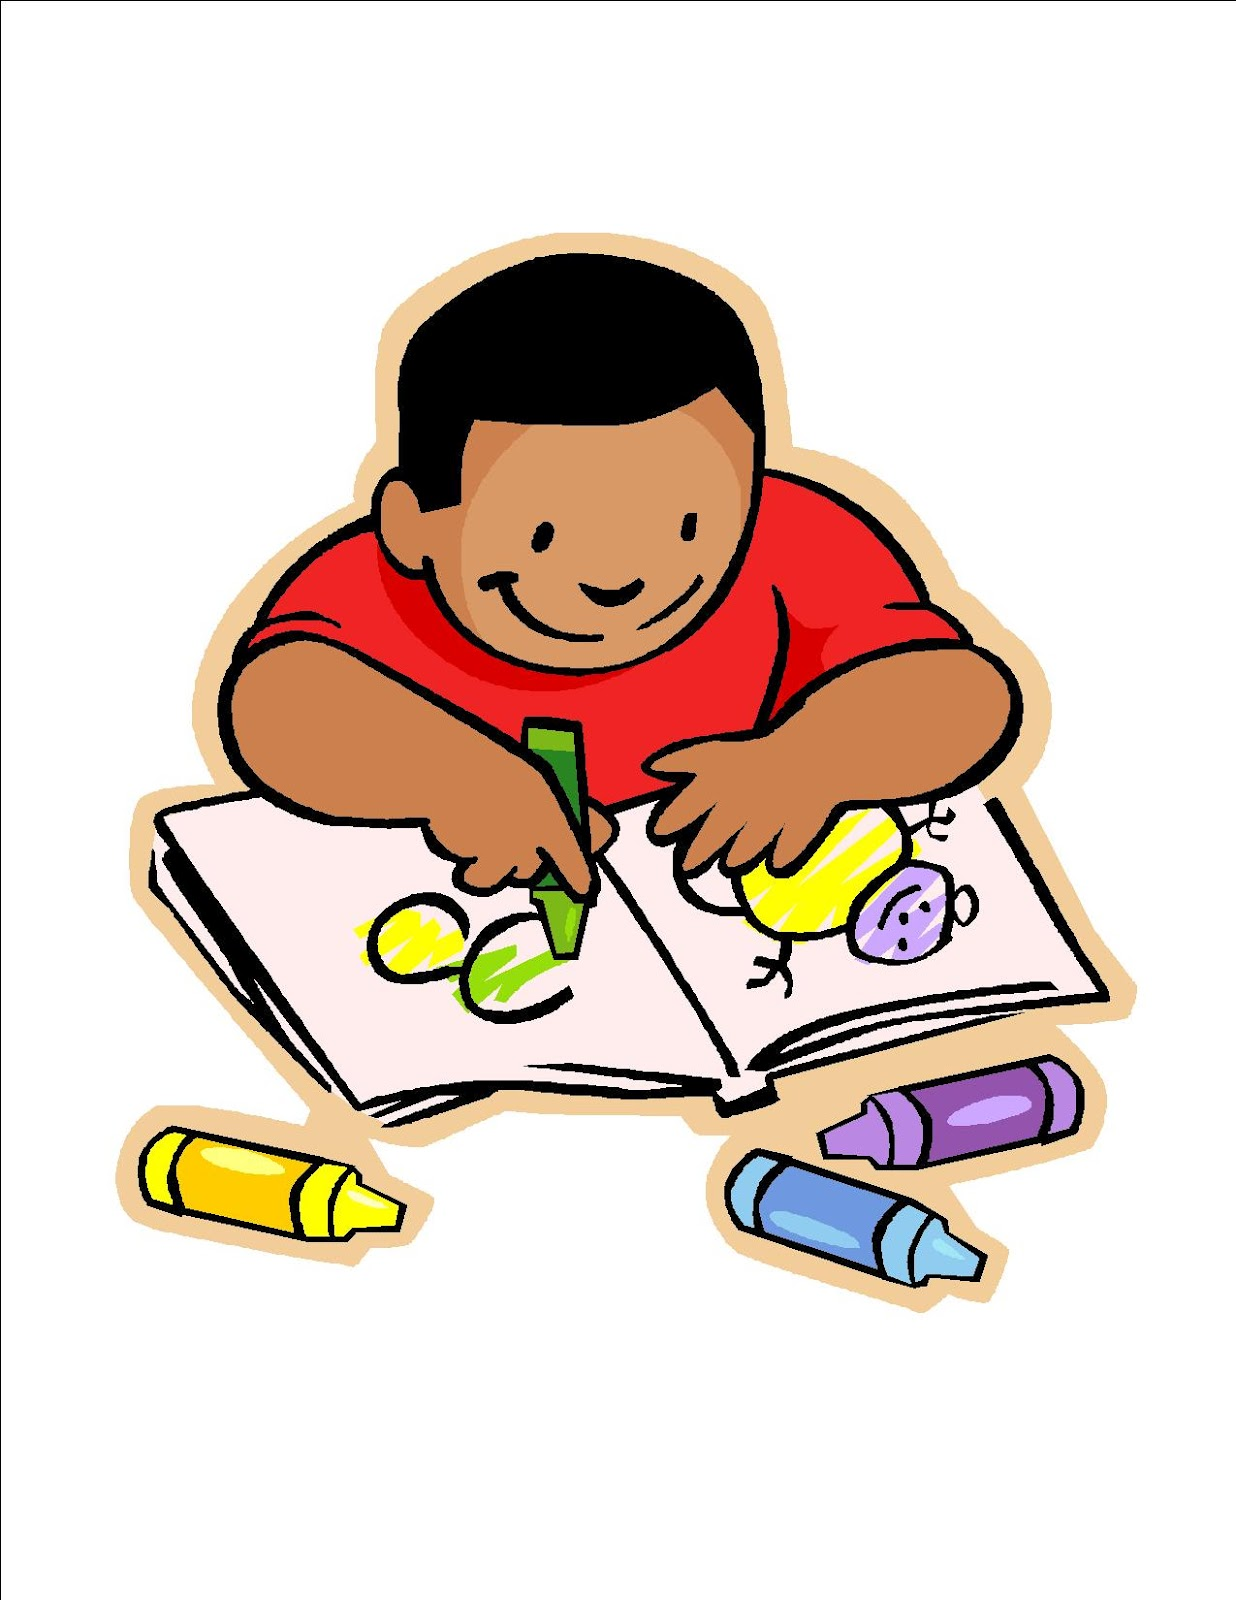 Free school cliparts download. Drawing clipart student